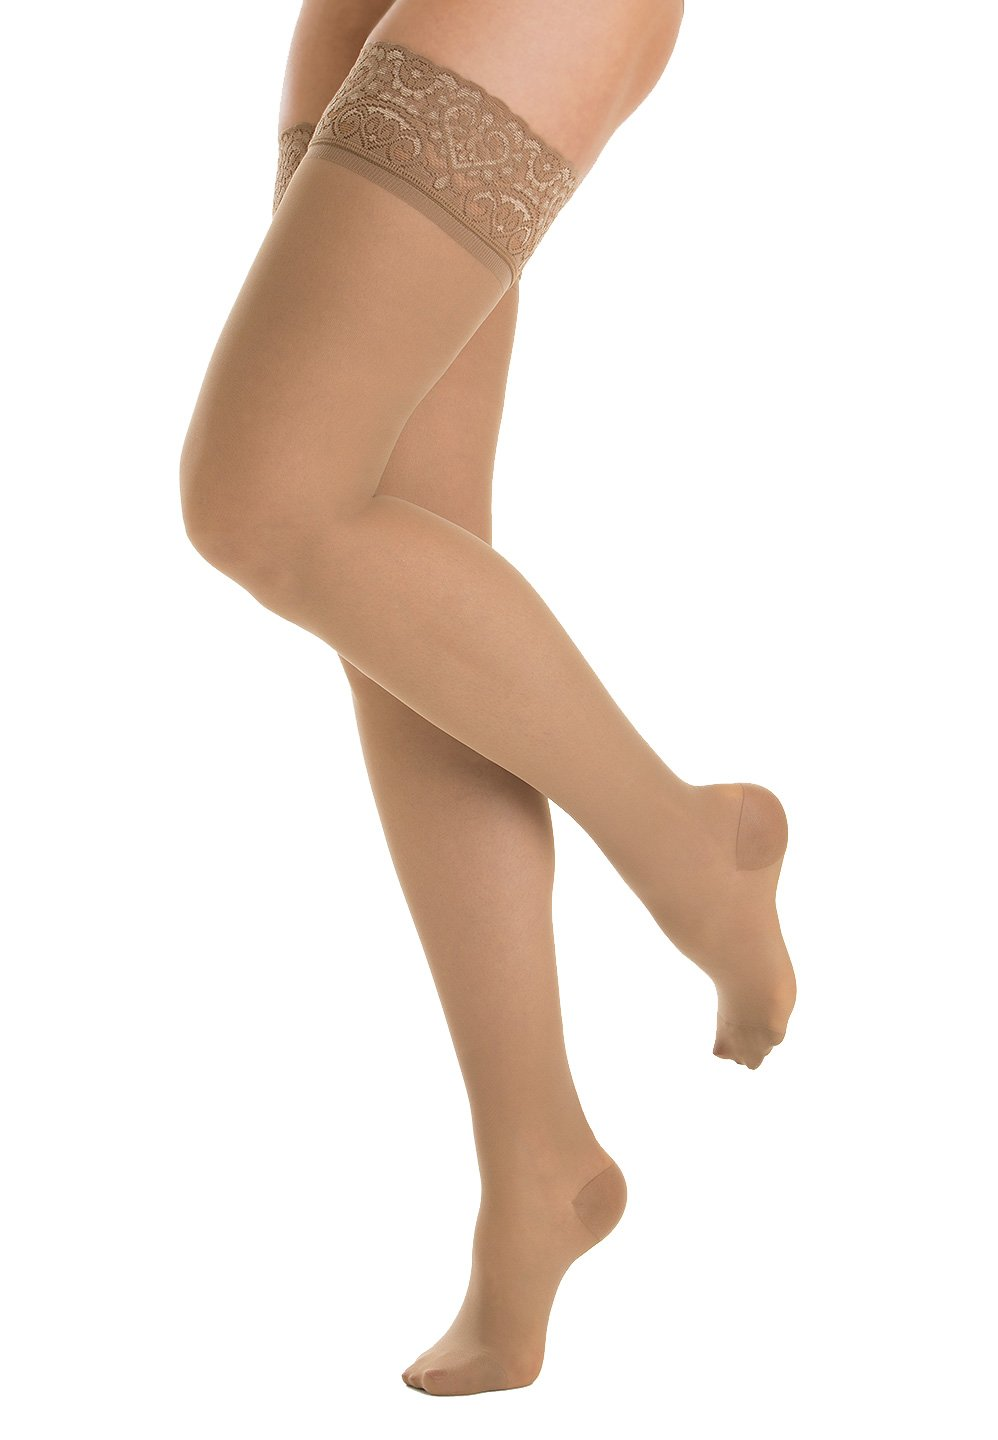 Relaxsan Prestige 870F - 15-20 mmHg support hold up stockings with Lycra 3D Calze G.T. S.r.l.